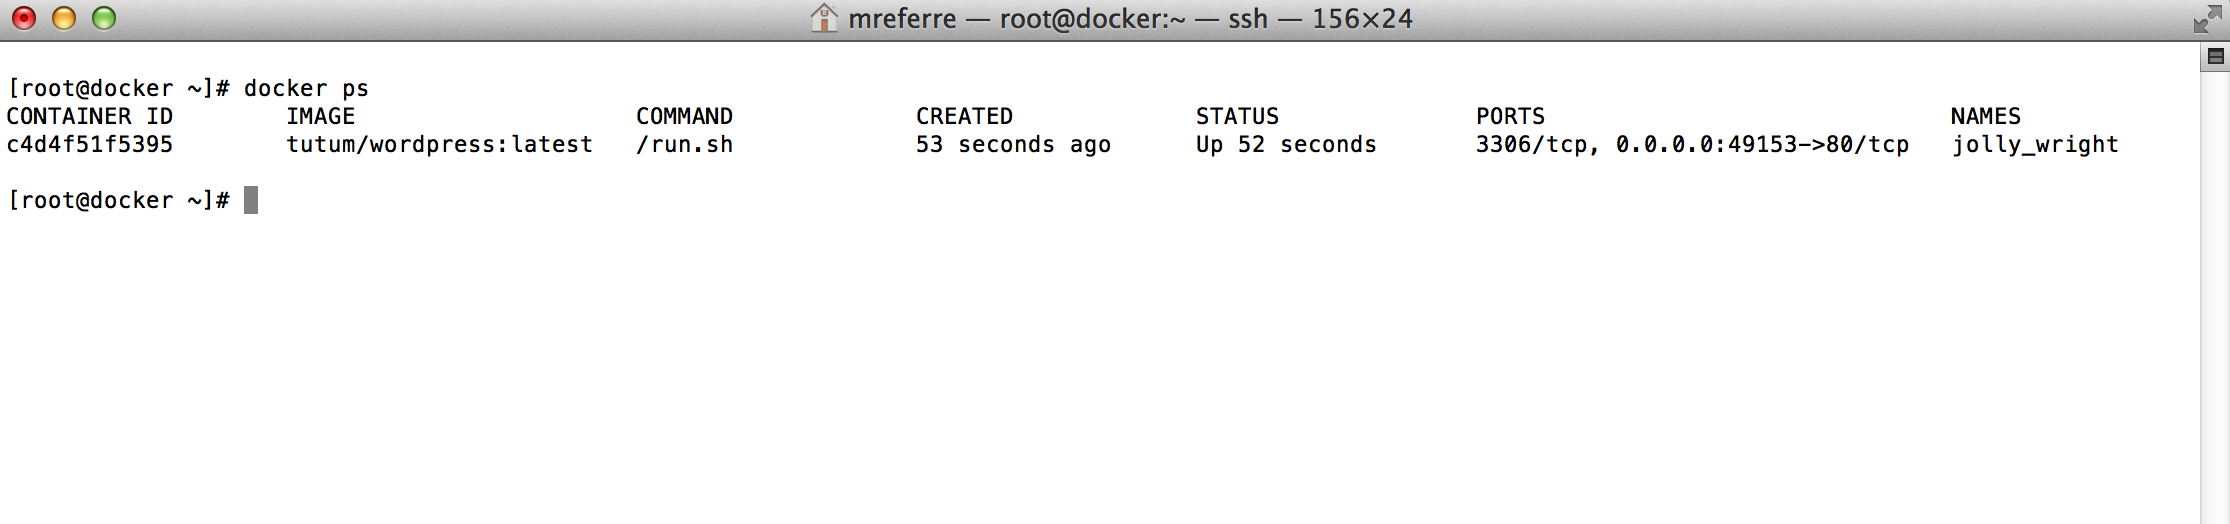 how to connect remotely to docker